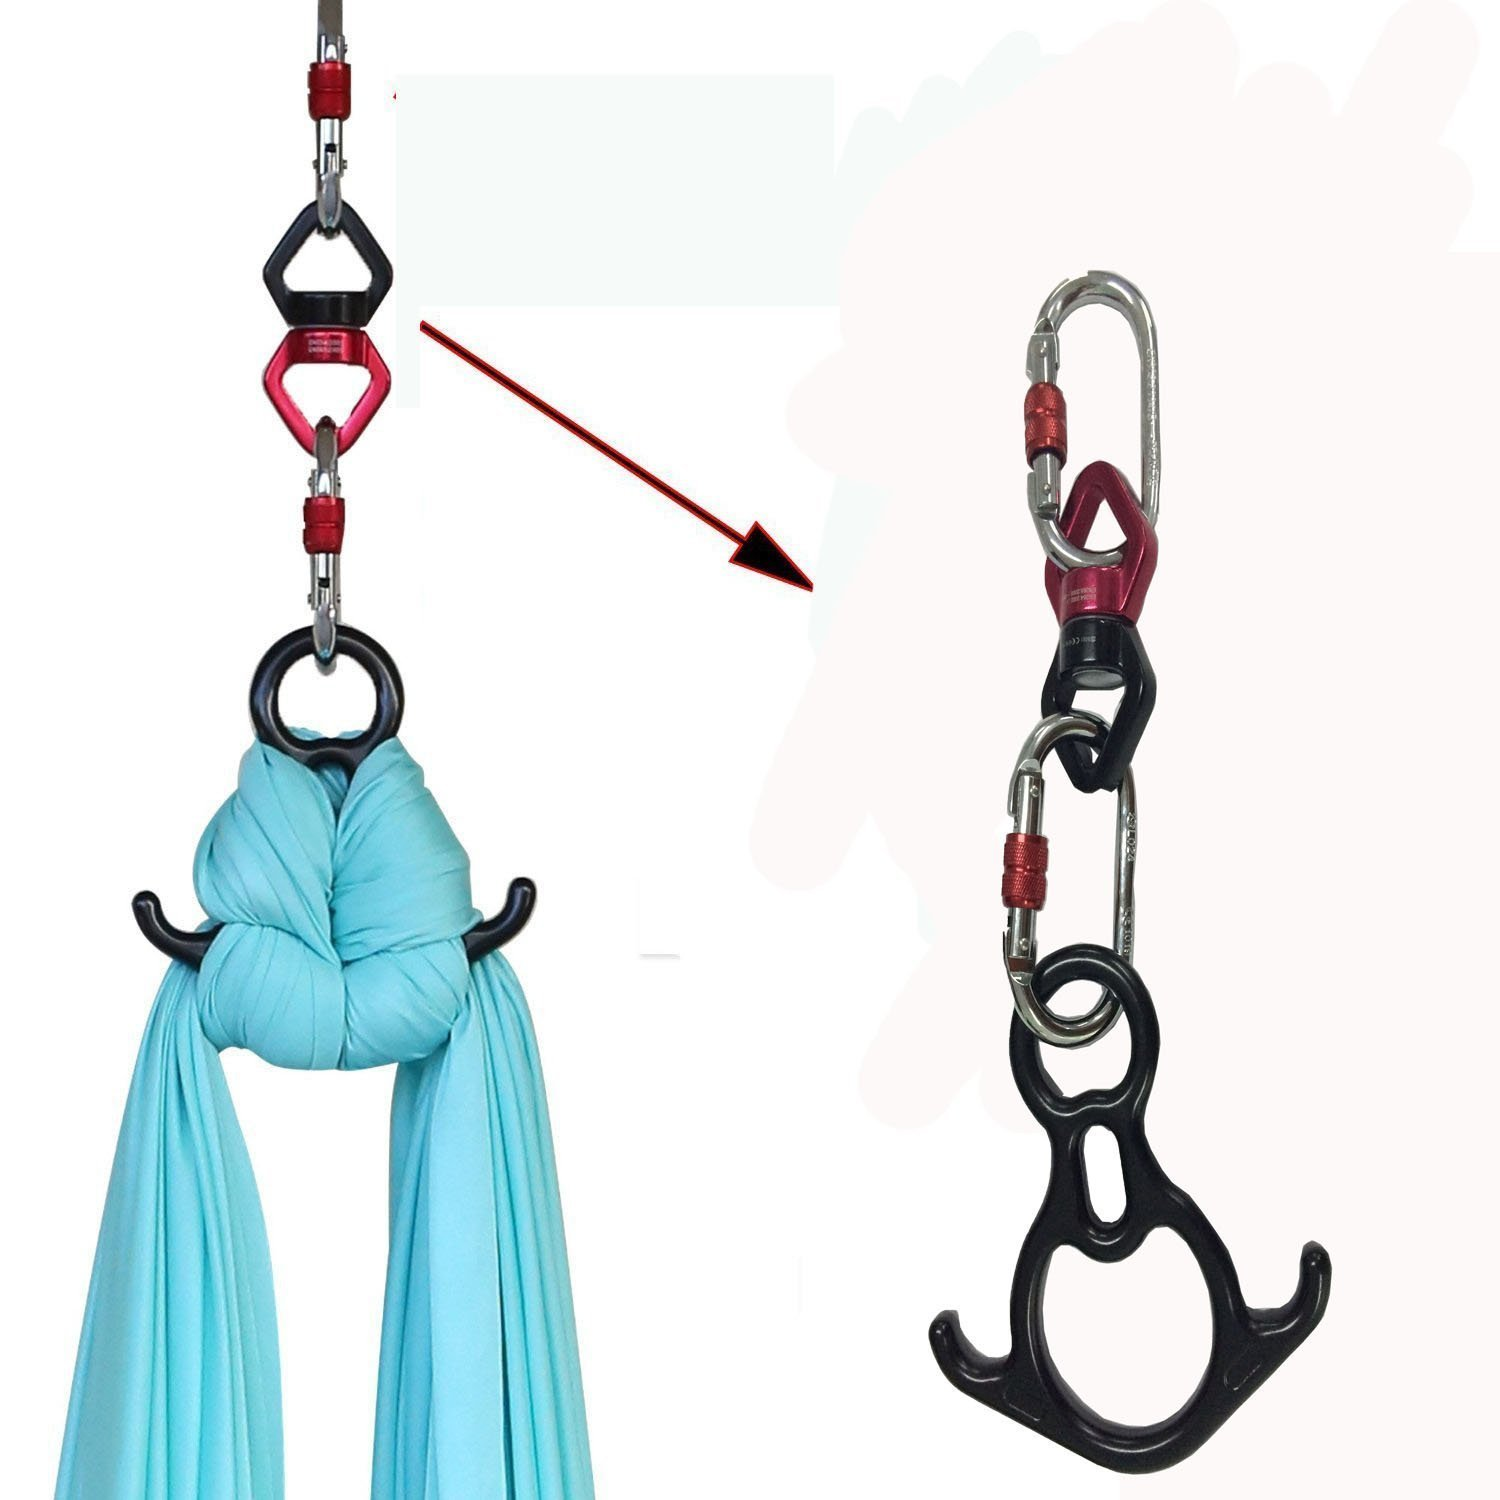 F.Life Aerial Silk Dance Rigging Hardware Kit Rescue Figure 8 & Rope Swivel & Steel Carabiners by F.Life (Image #2)